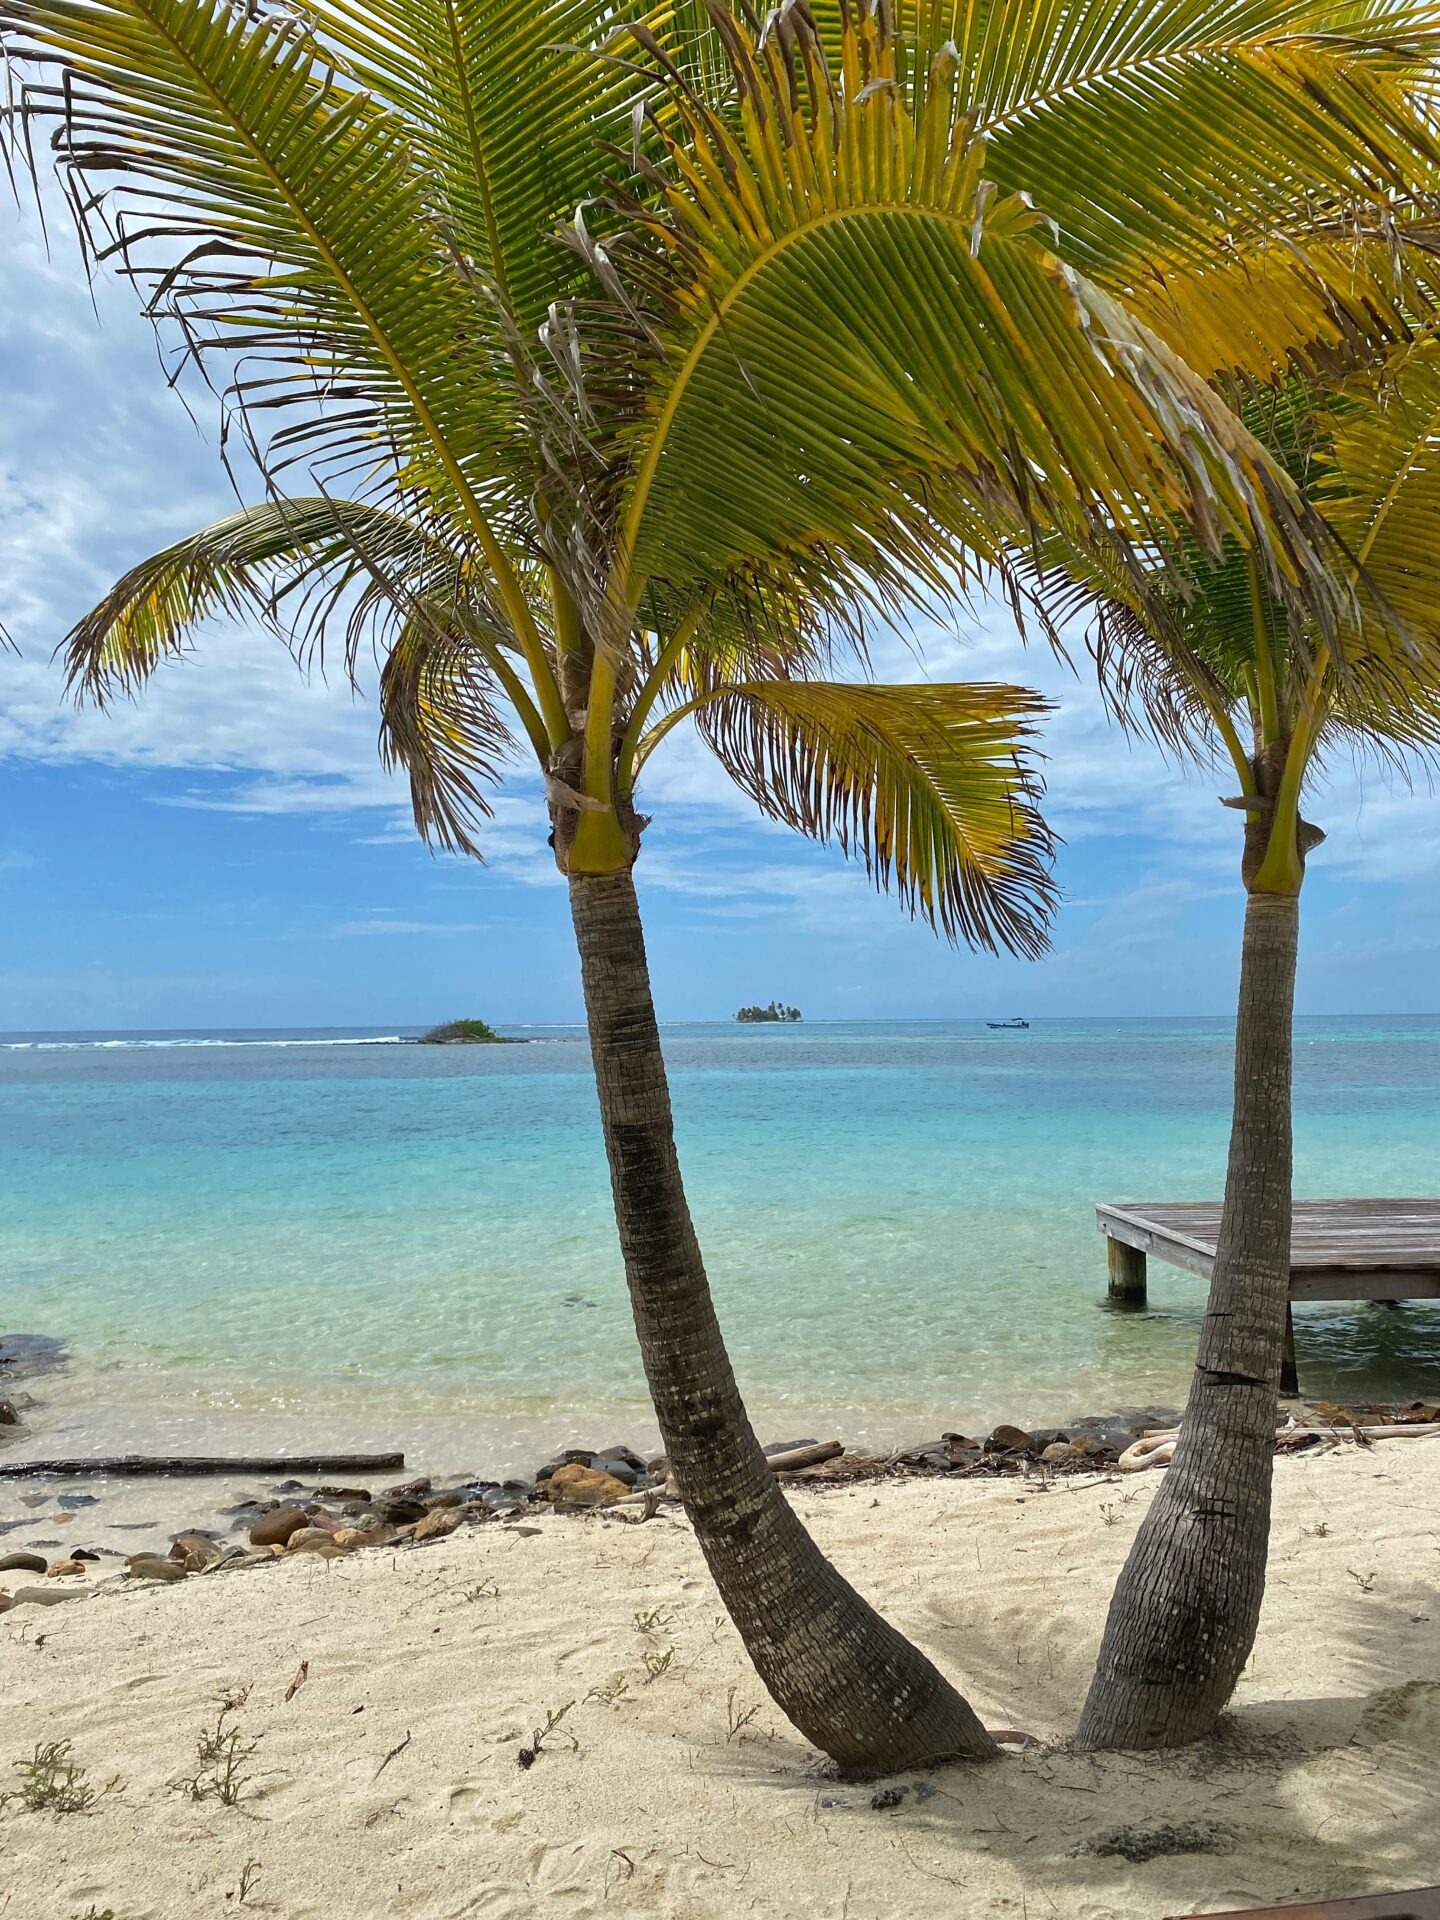 south-water-caye-belize-cchanona